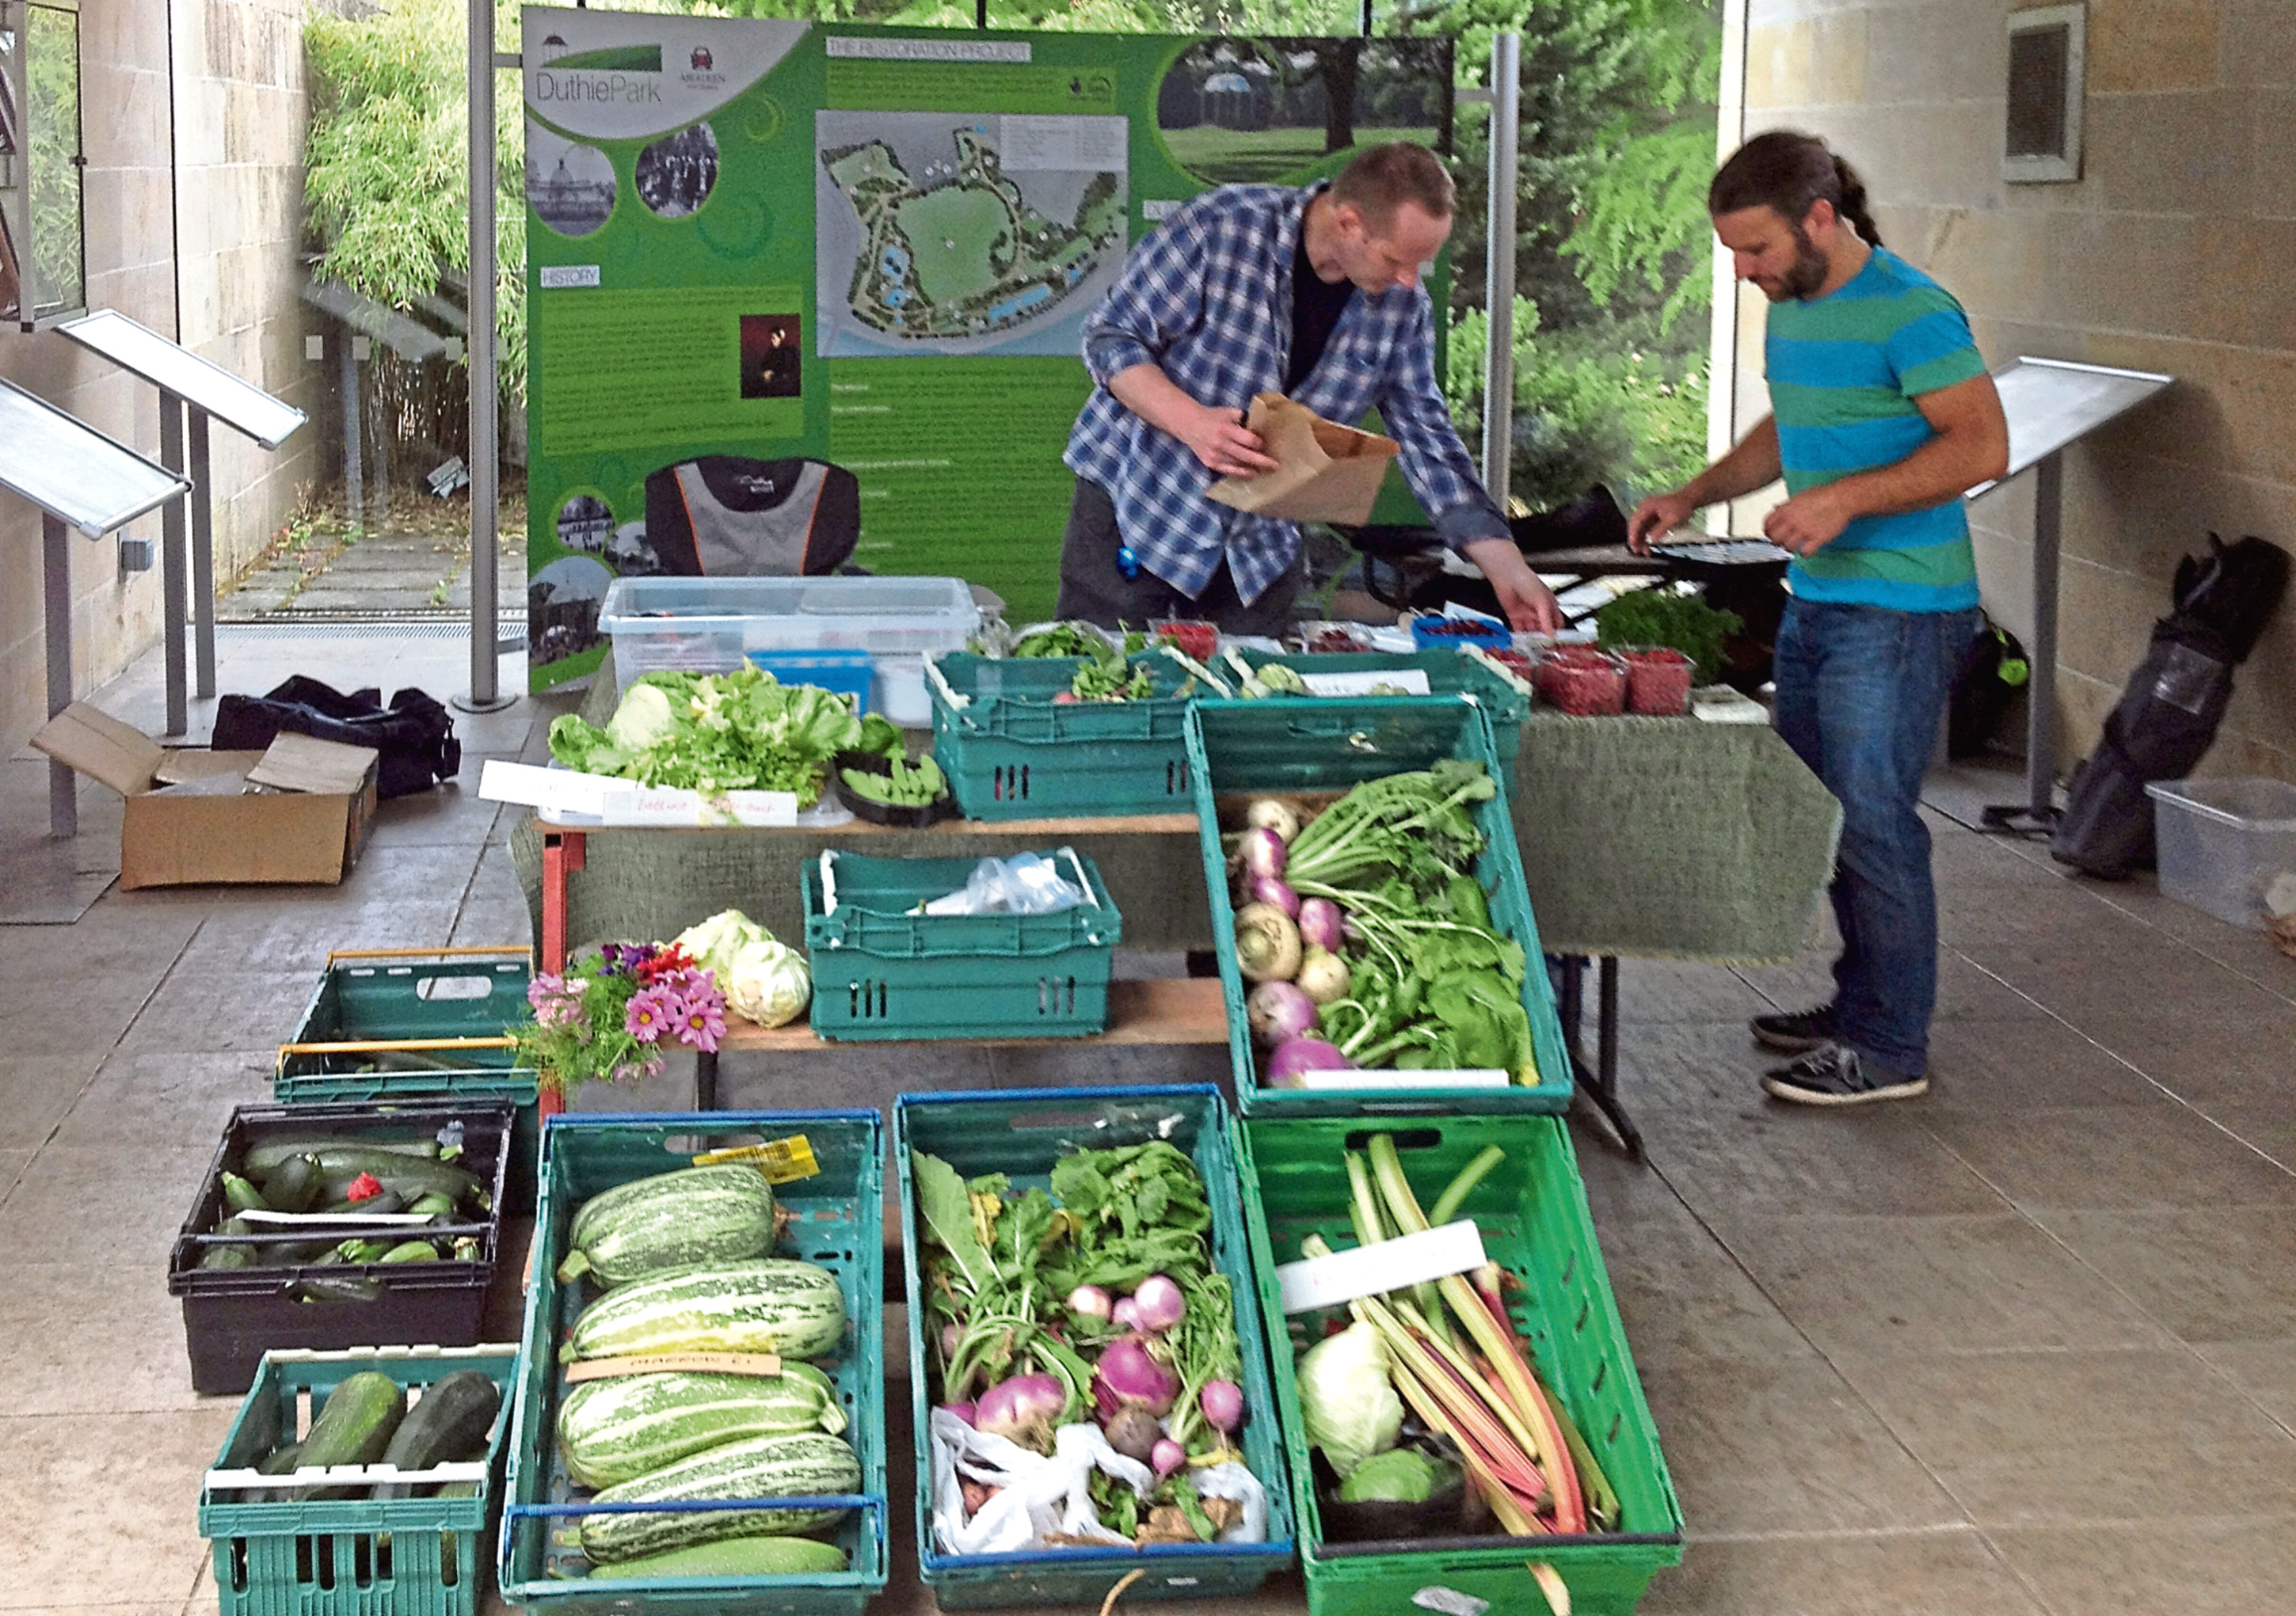 The Allotment Market Stall will be in Seaton Park every Friday from July 24